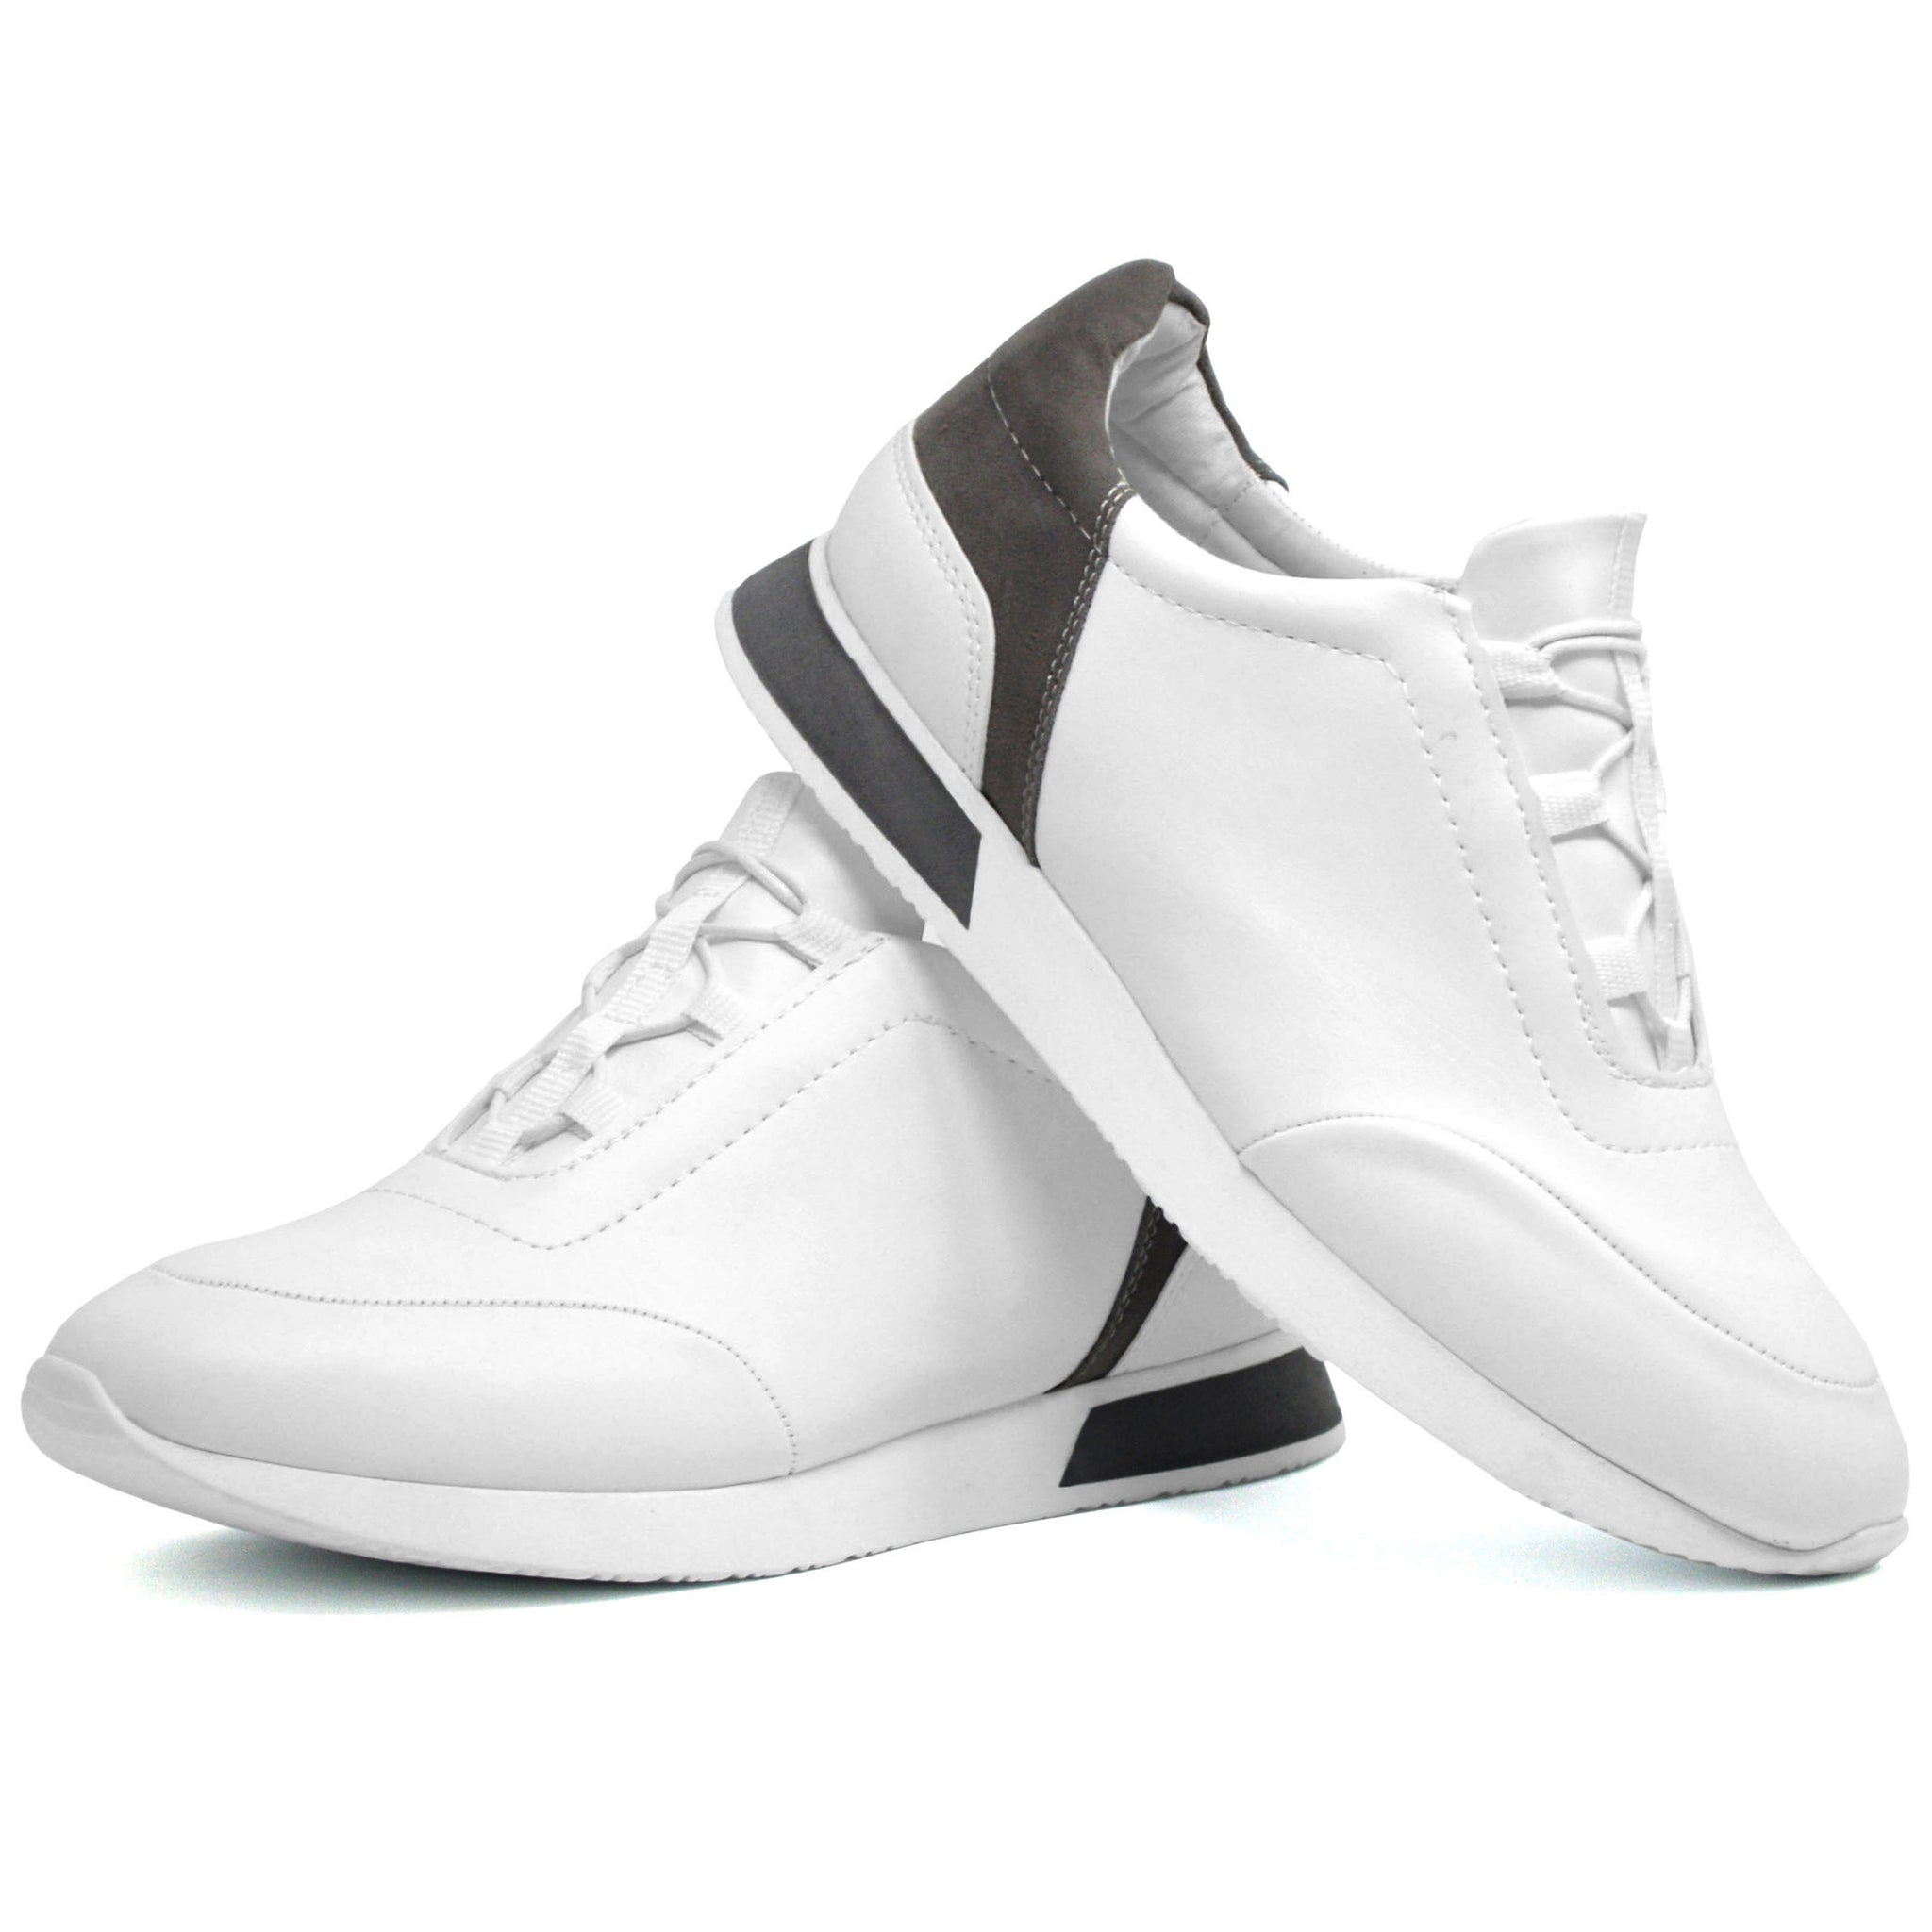 Mens White Smart Casual Work Gym Tennis Lace Up Trainers Classydude